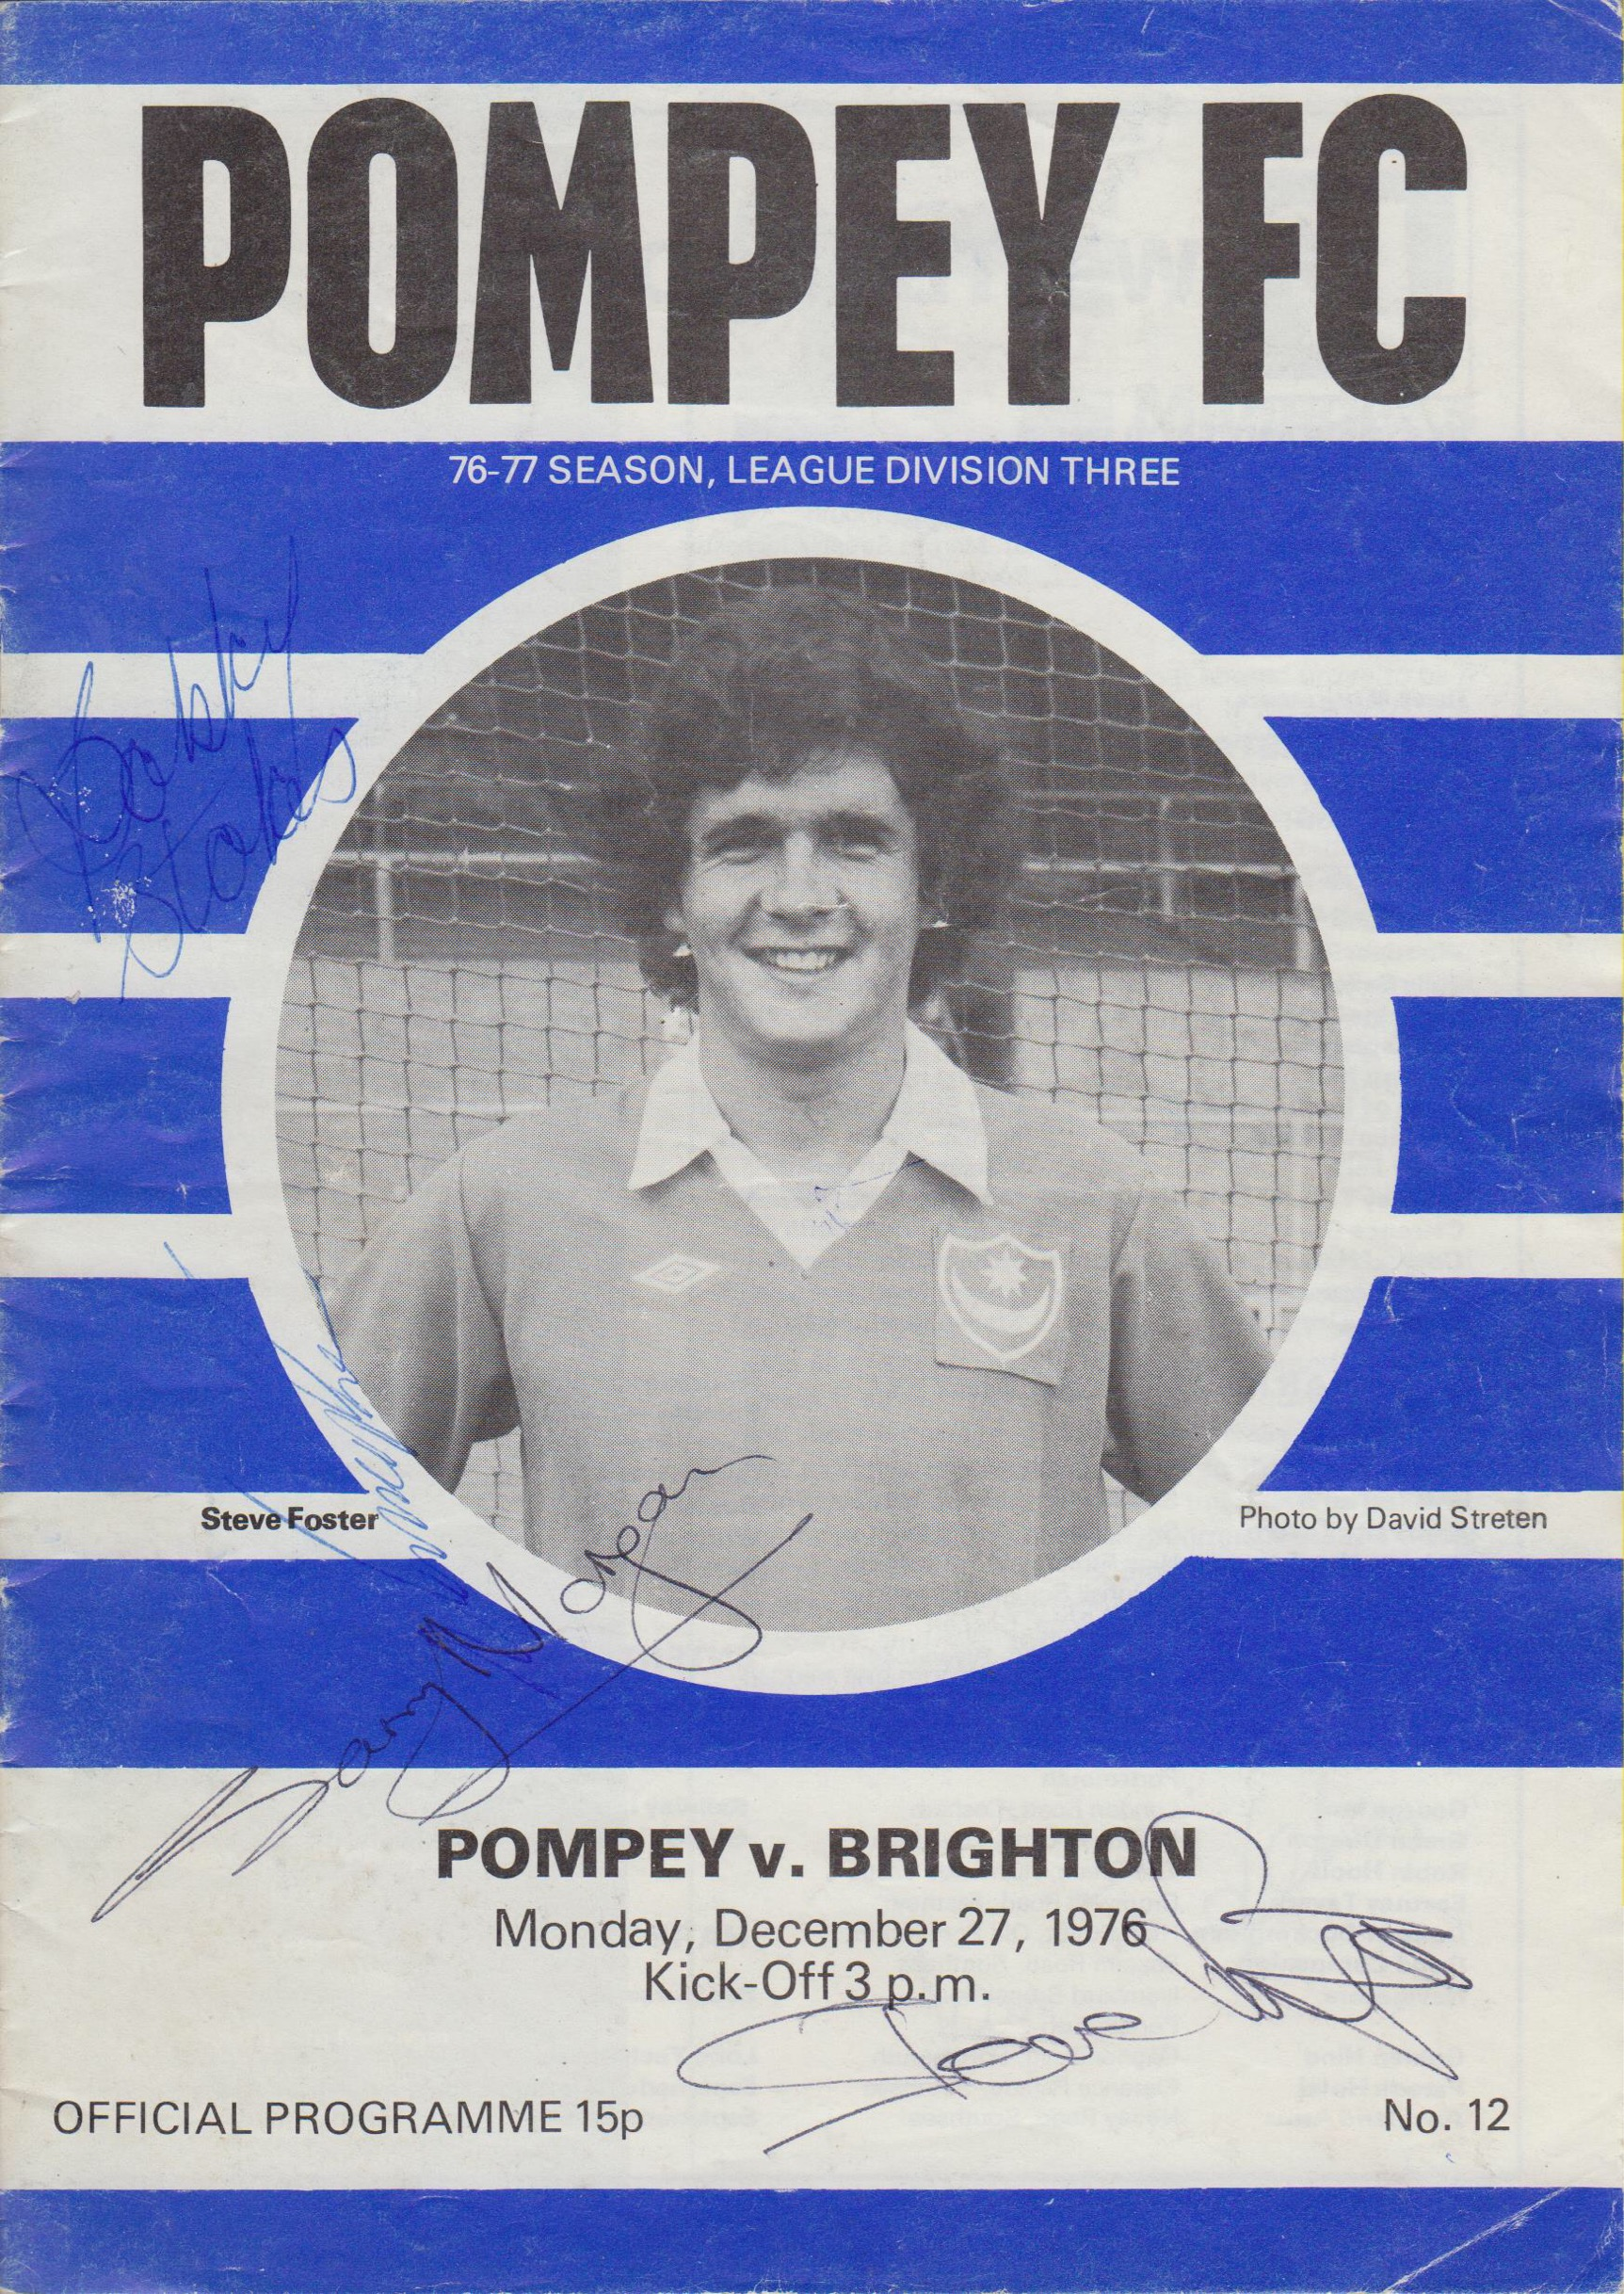 Modern Portsmouth FC Programme inspired by one for the 70's.